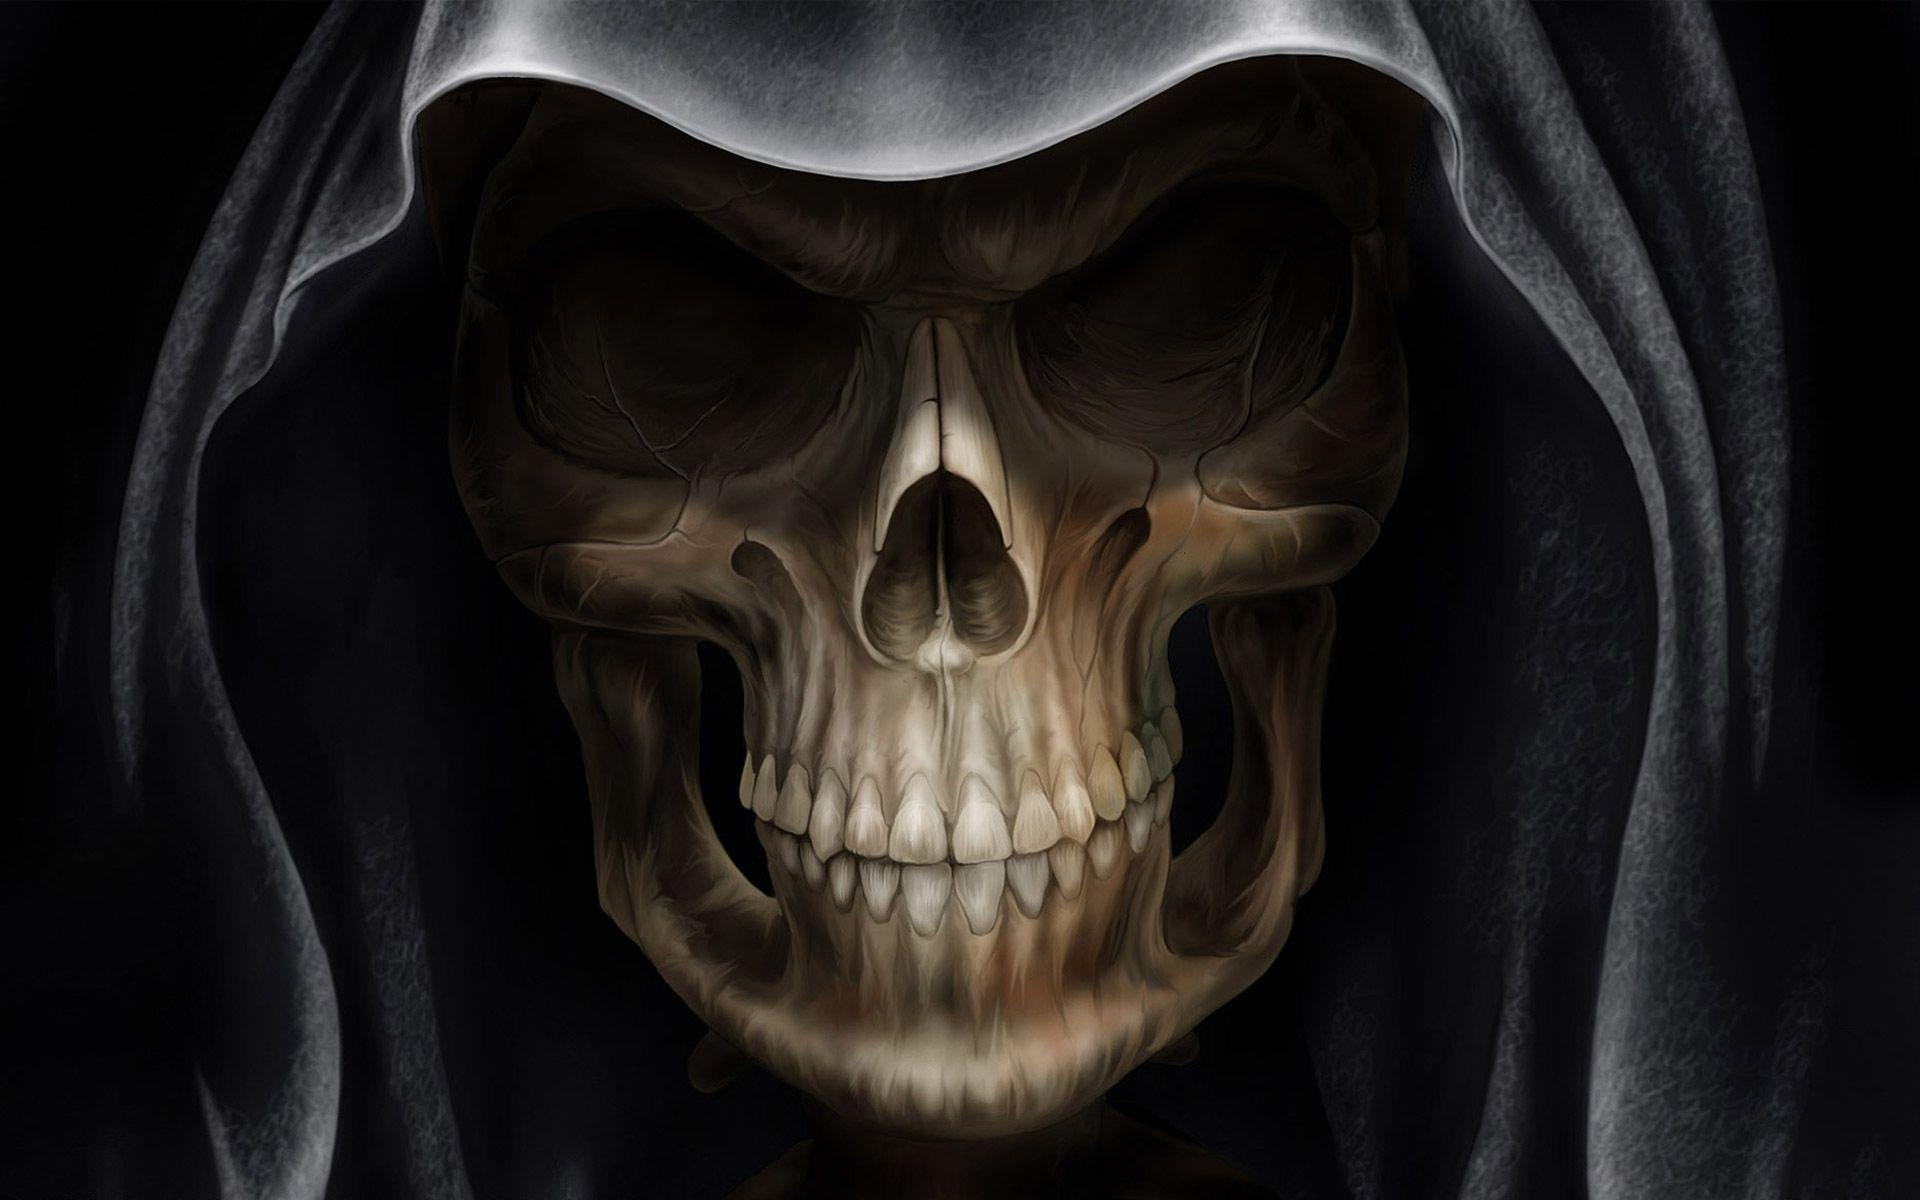 skull wallpaper wallpapers hd - photo #13